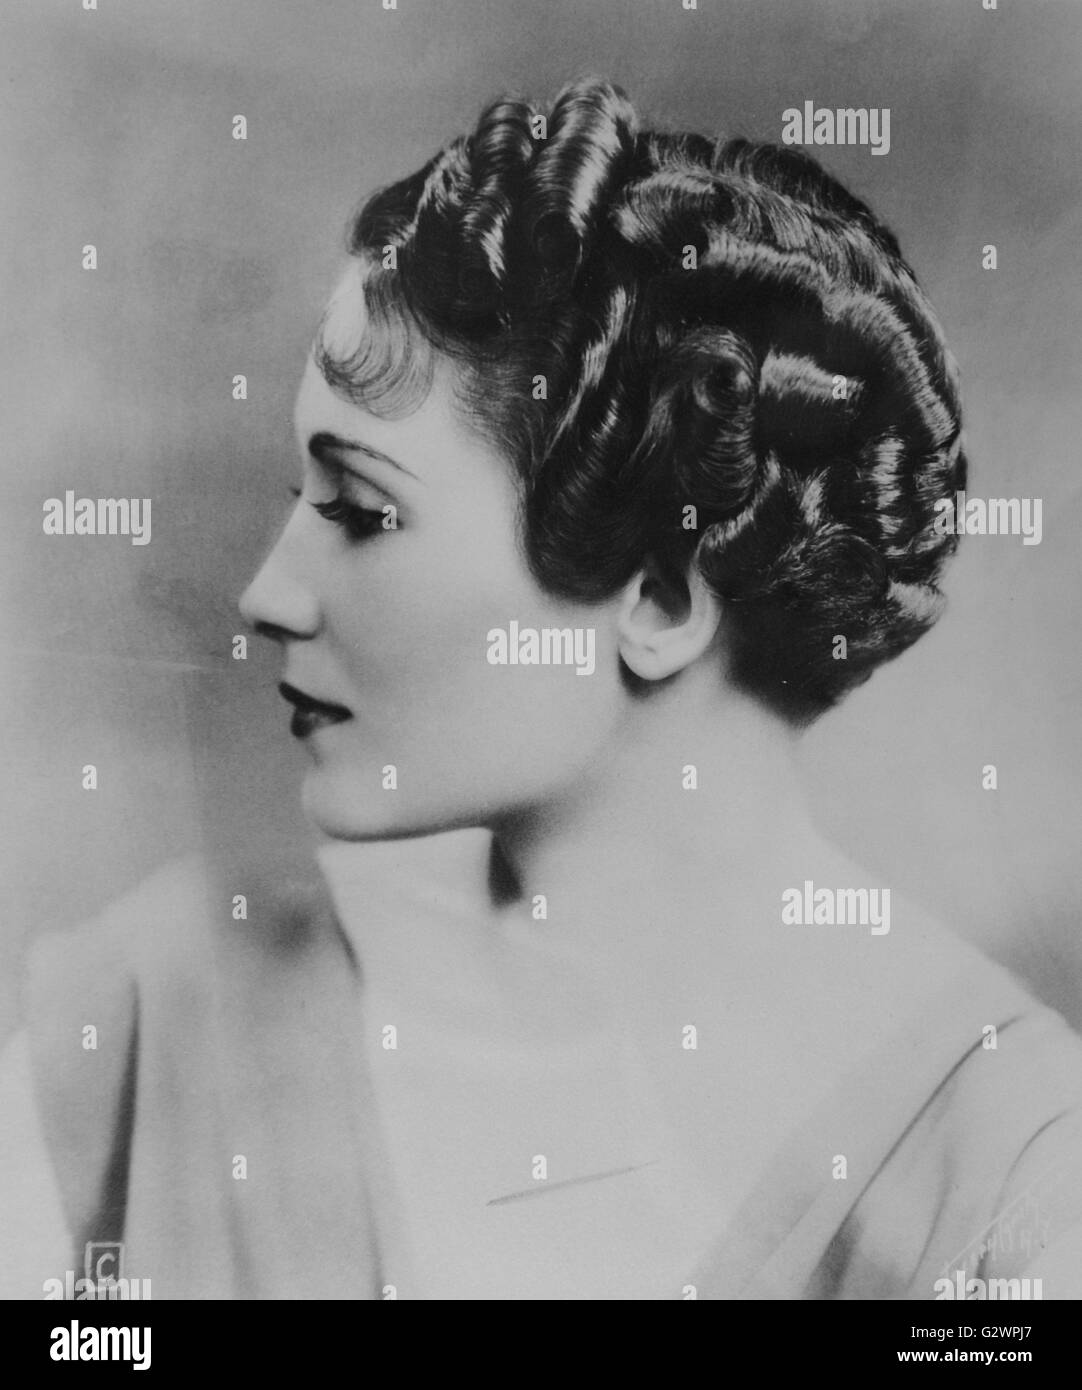 Women S Marcelled Hairstyle From 1934 Stock Photo Alamy